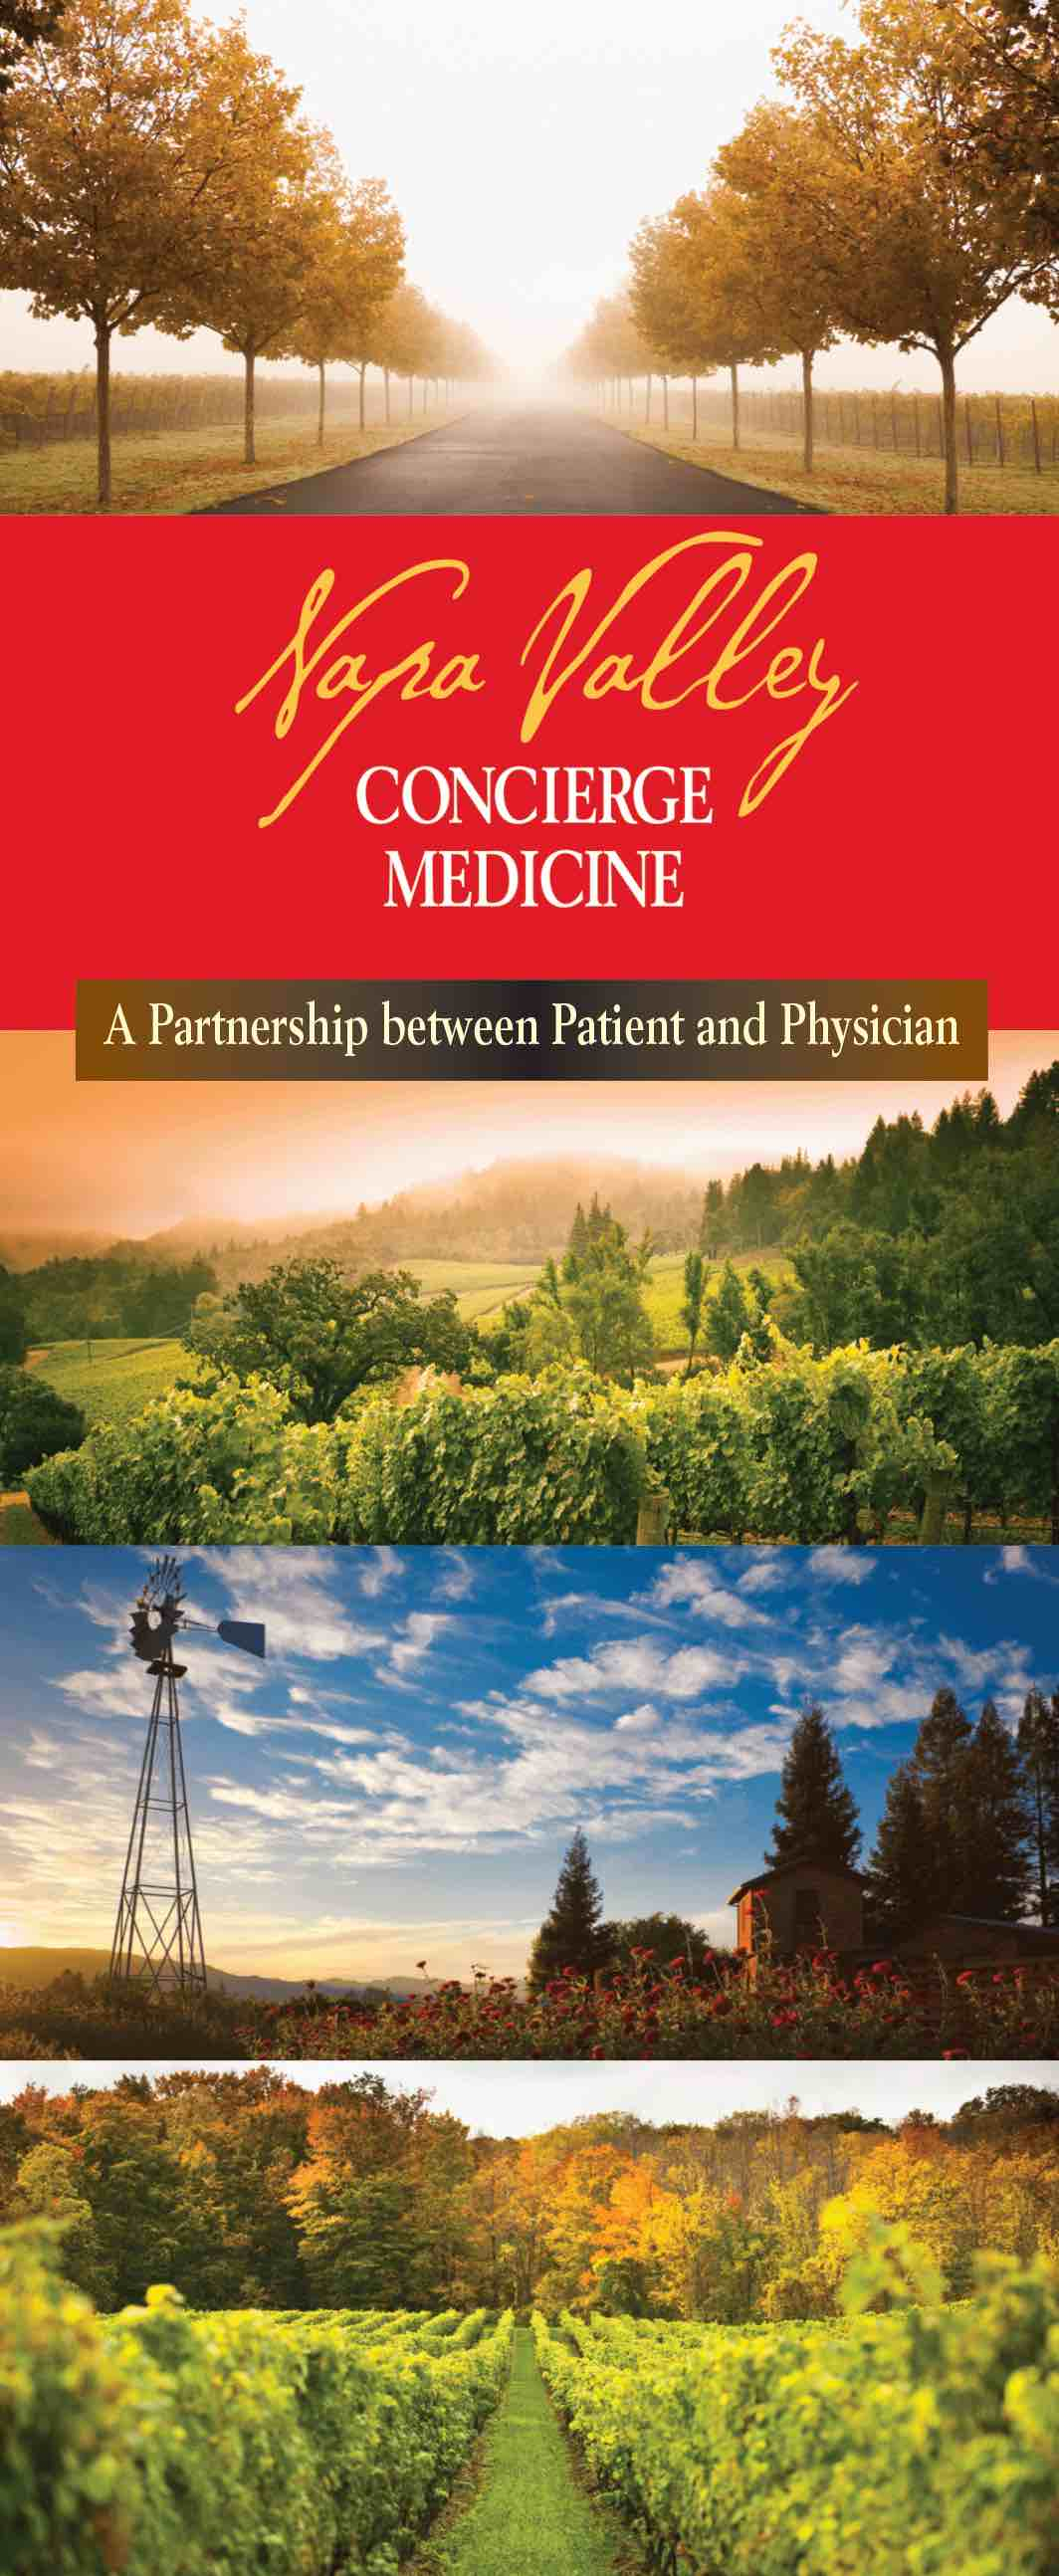 Napa Valley Concierge Medicine